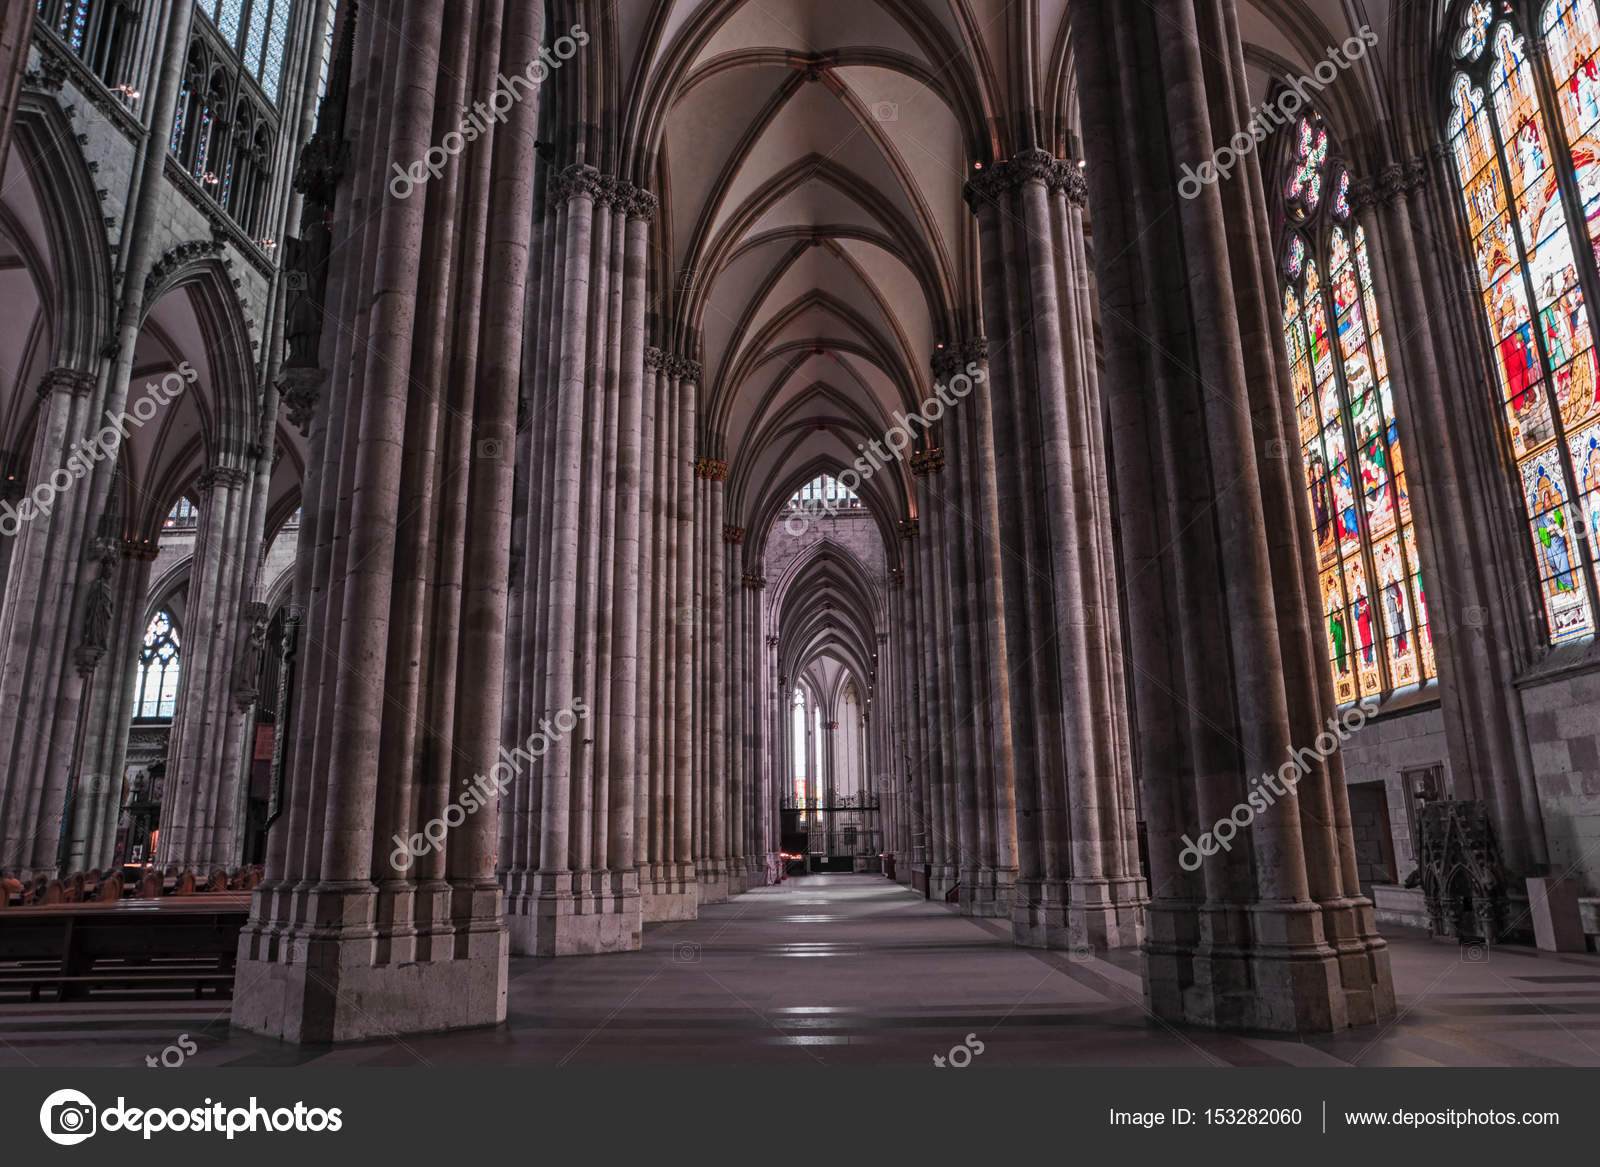 Famous Monument And Most Visited Place Symbol Of Cologne Inside Dom Nave Columns Stained Glass Ceiling UNESCO World Heritage Site Photo